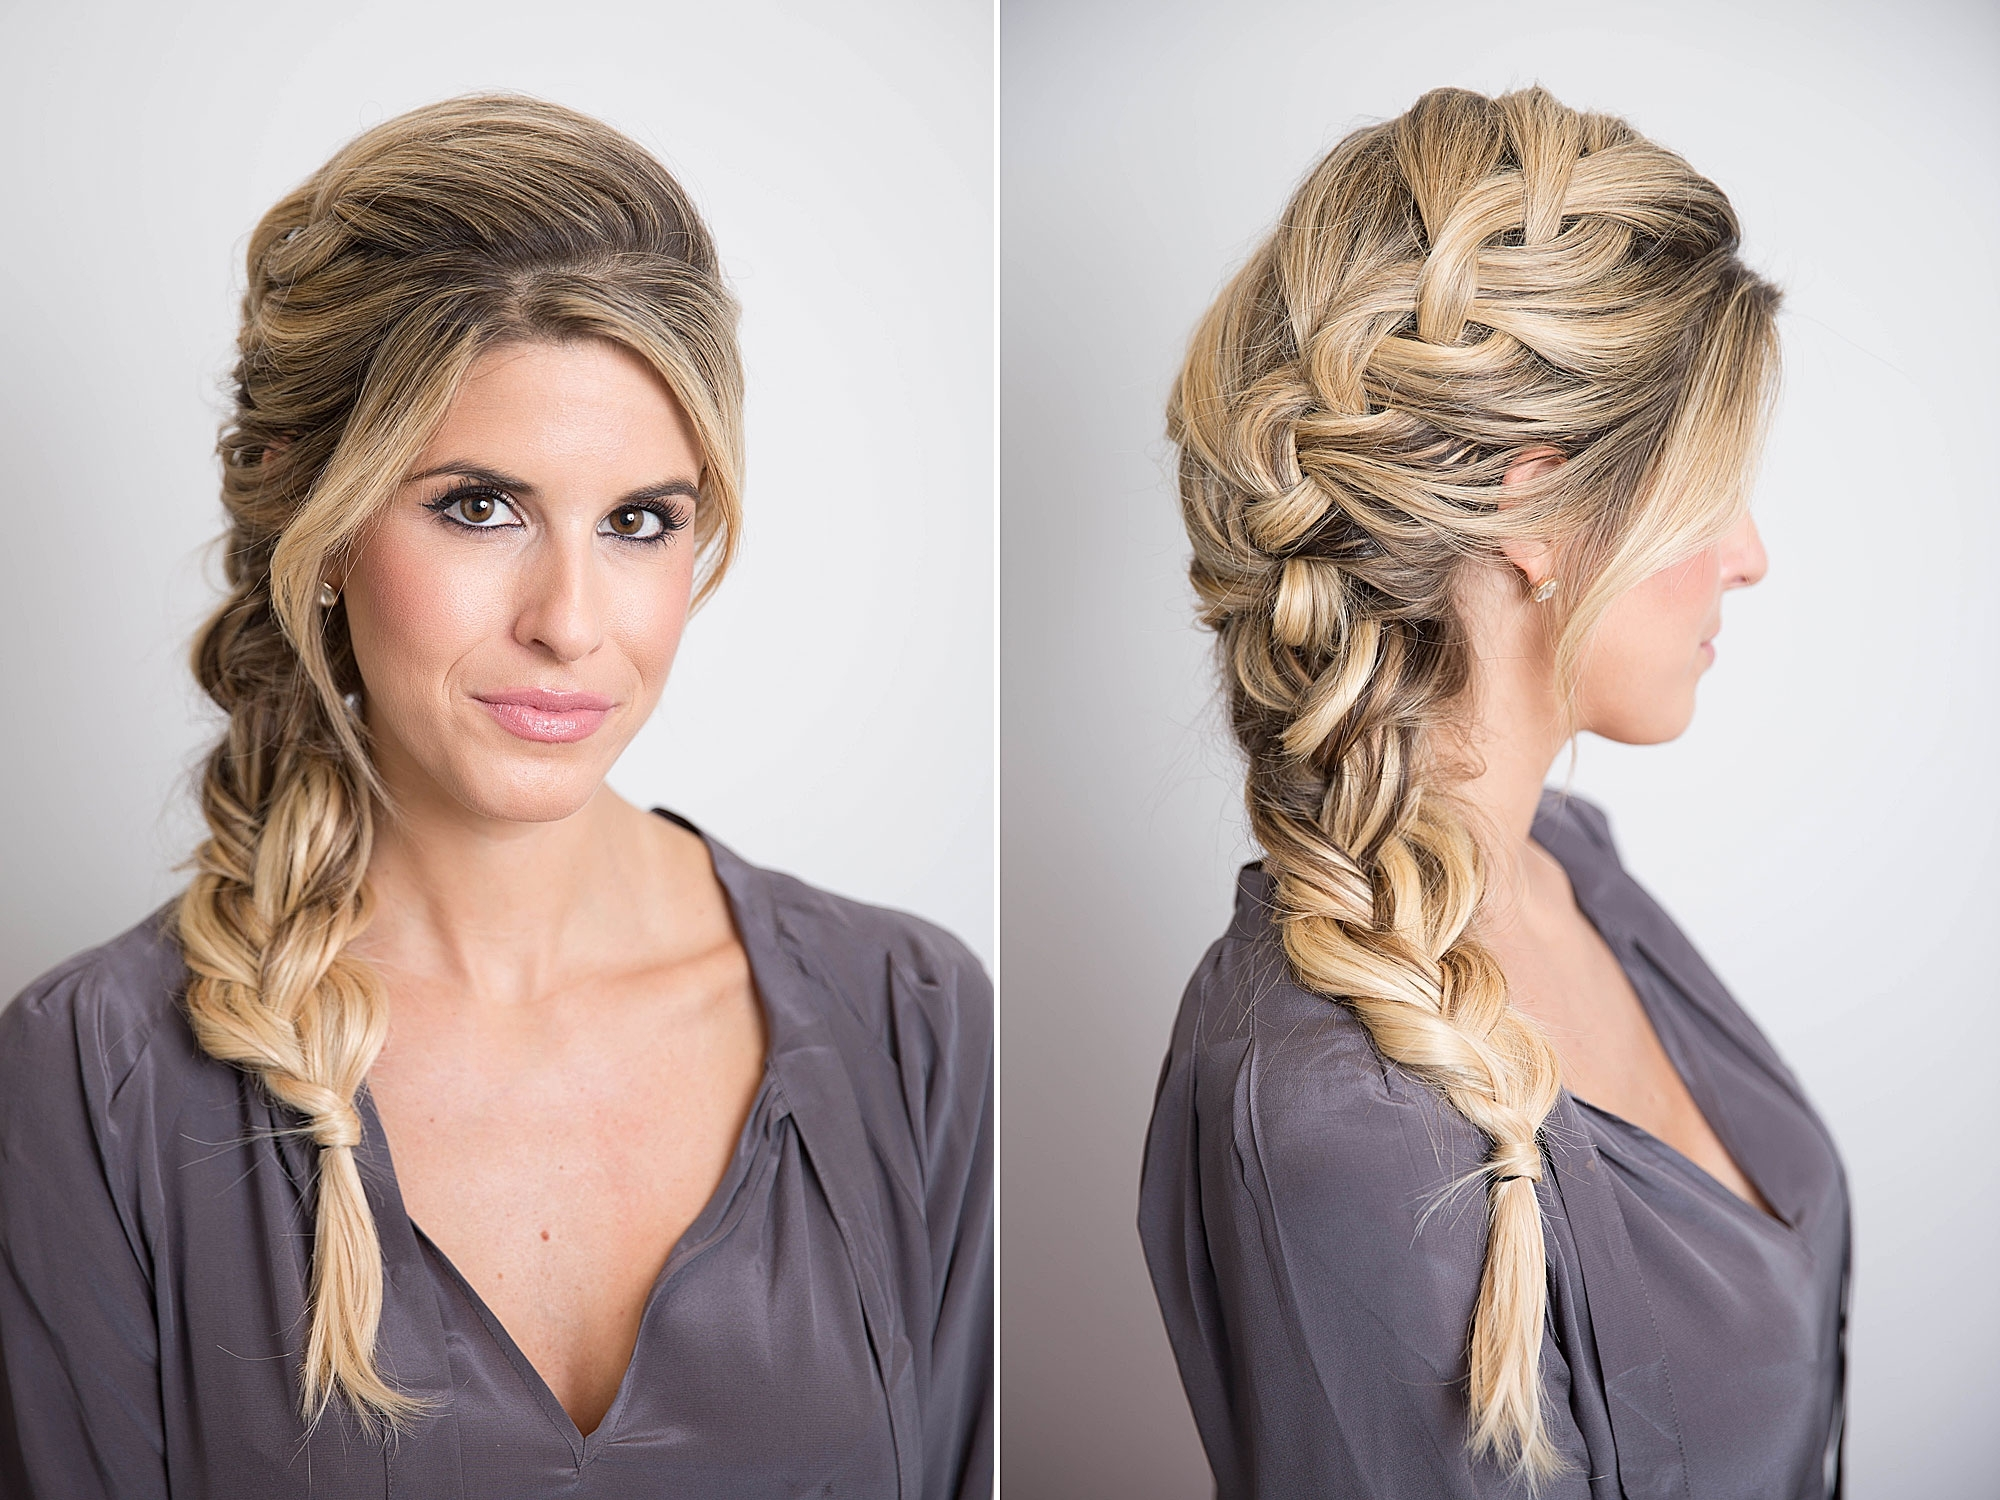 20 Best Braided Hairstyles You Should Try In 2018 – Your Glamour In Popular Top Braided Hairstyles (View 1 of 15)